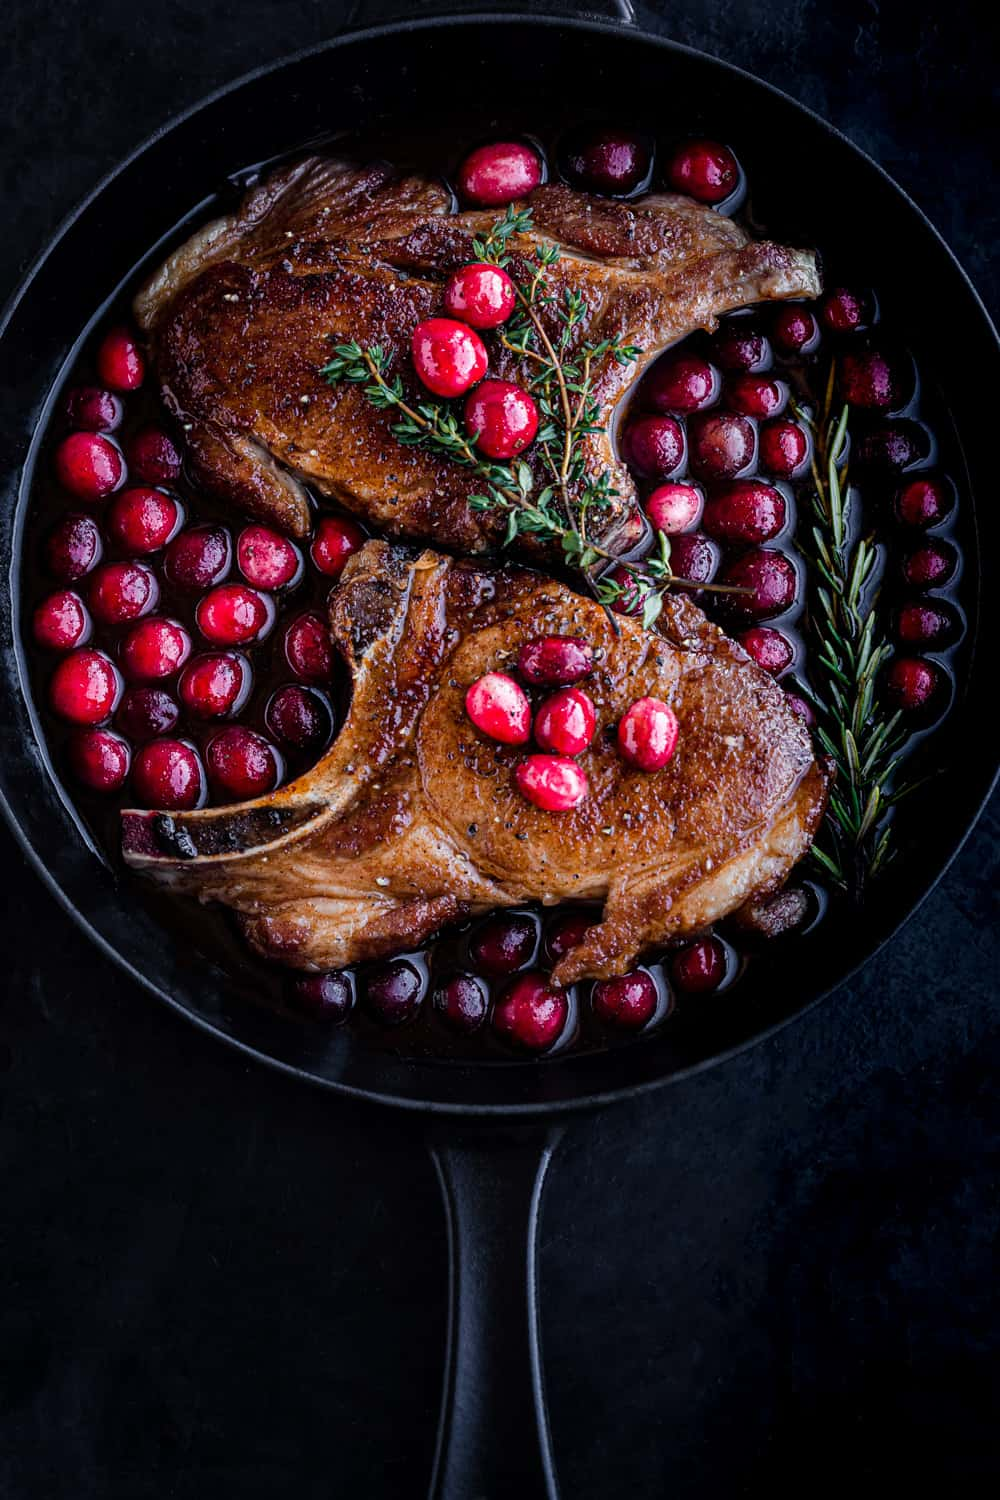 Post sear and pre-oven pork chop overhead shot; chops are in a cast iron skillet with the cranberry sauce on a black background.